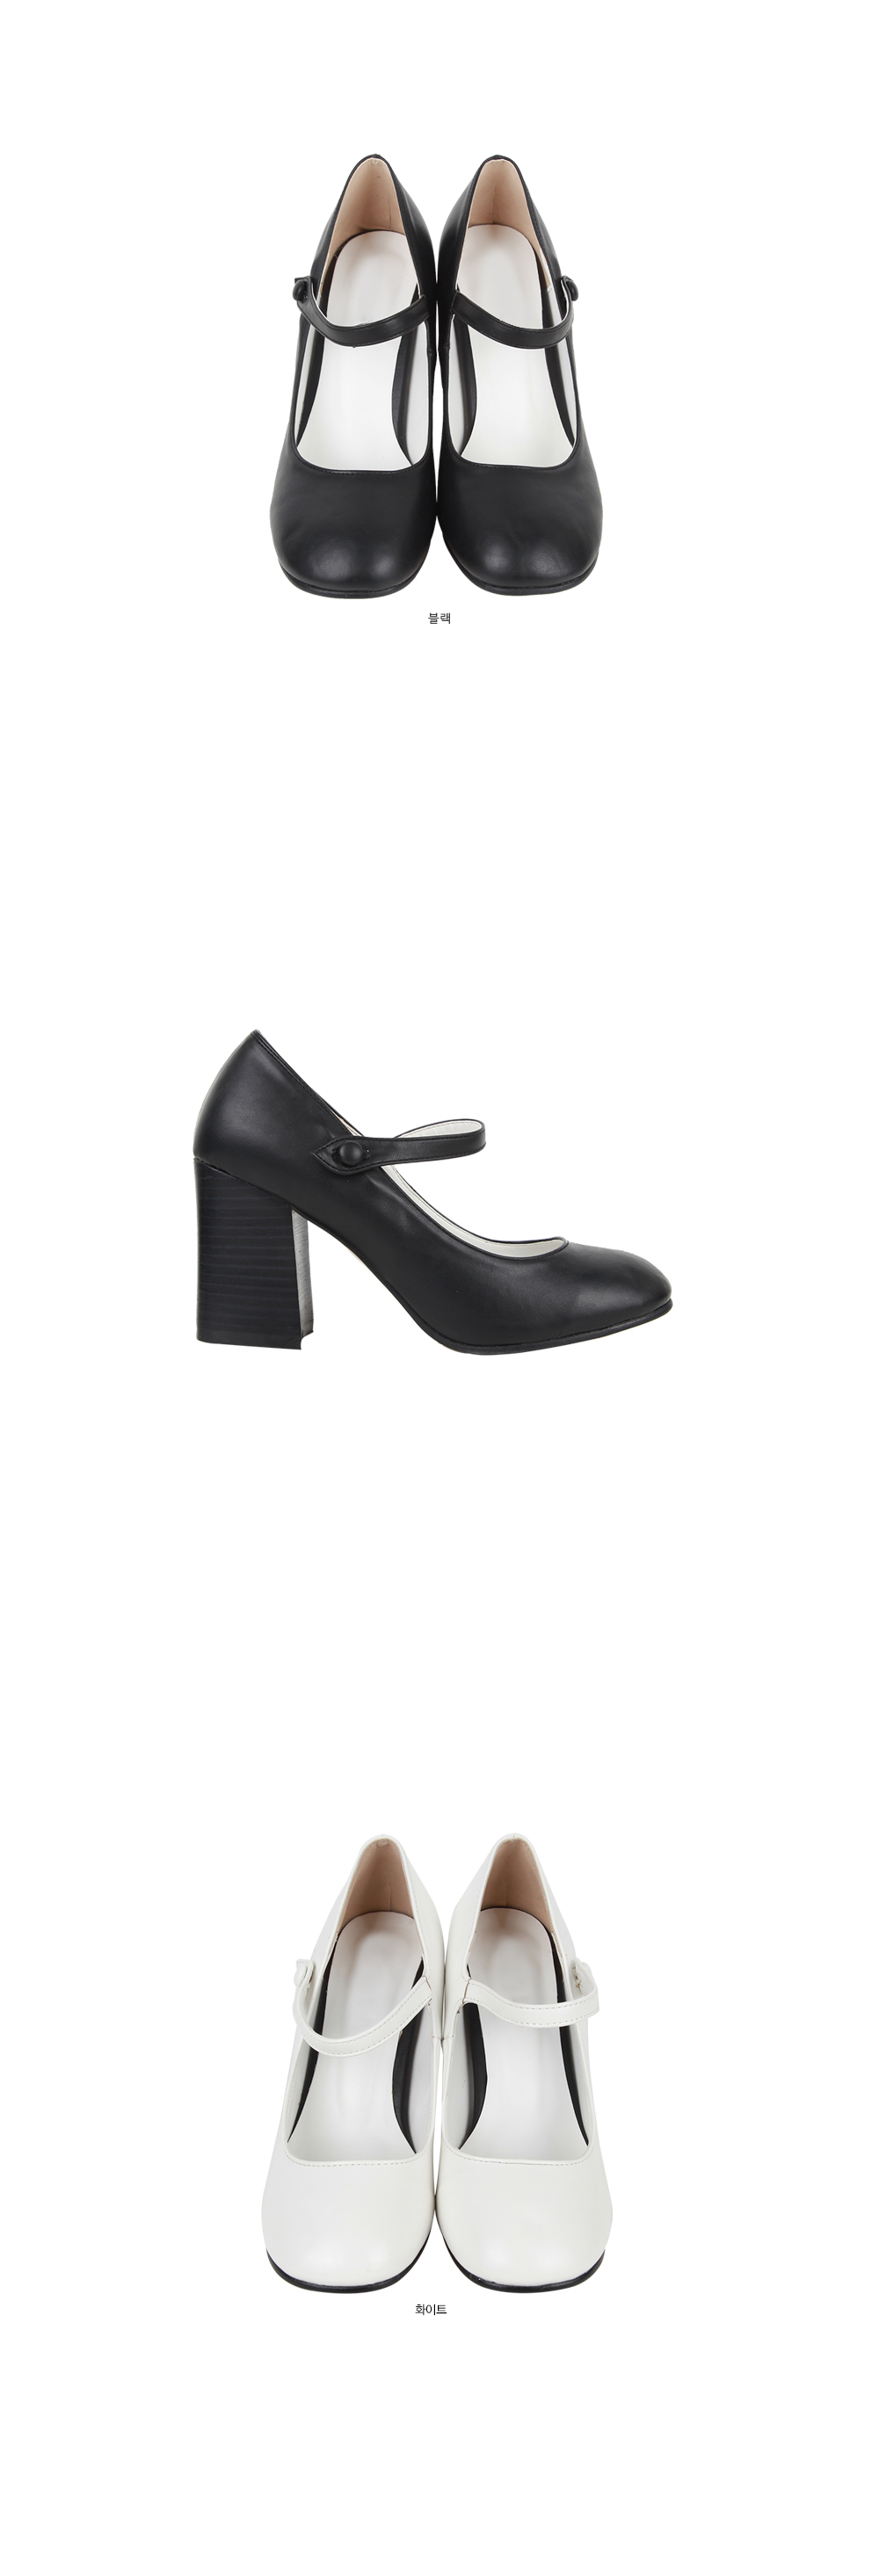 mary janes dancing shoes (2 colors)